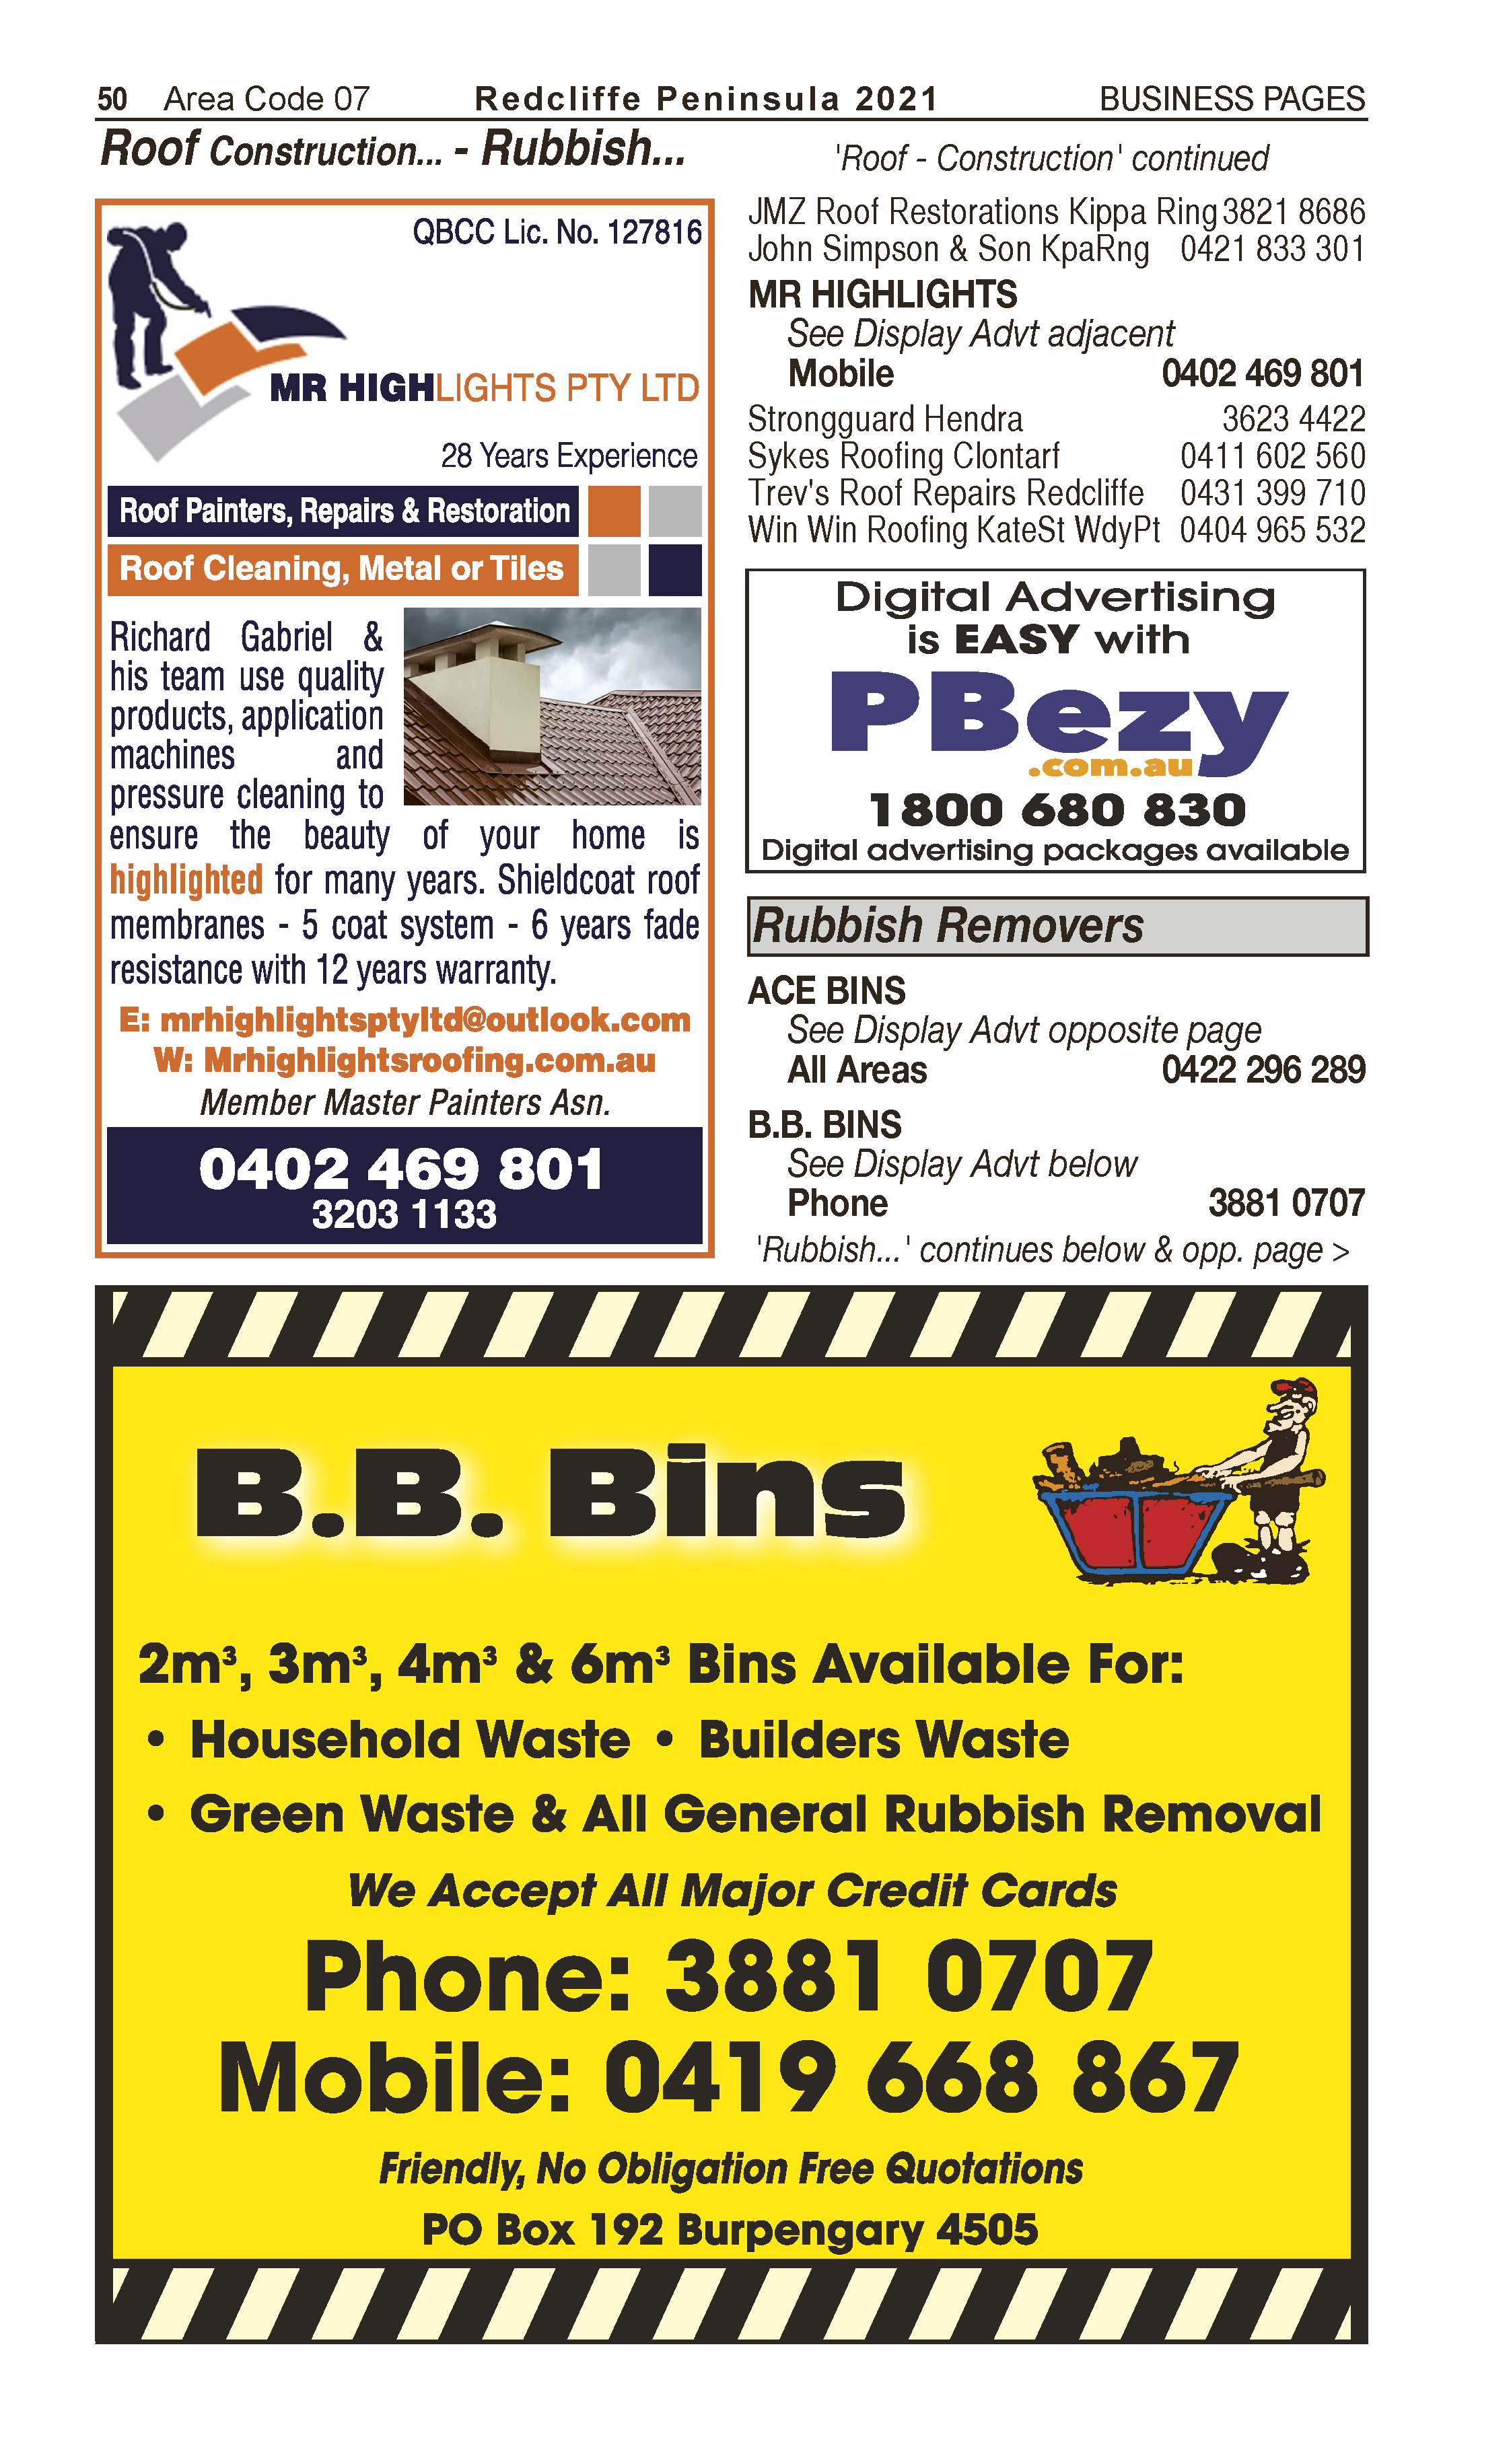 Ace Bins | Rubbish Removers, Rubbish Removal in Morayfield | PBezy Pocket Books local directories - page 50